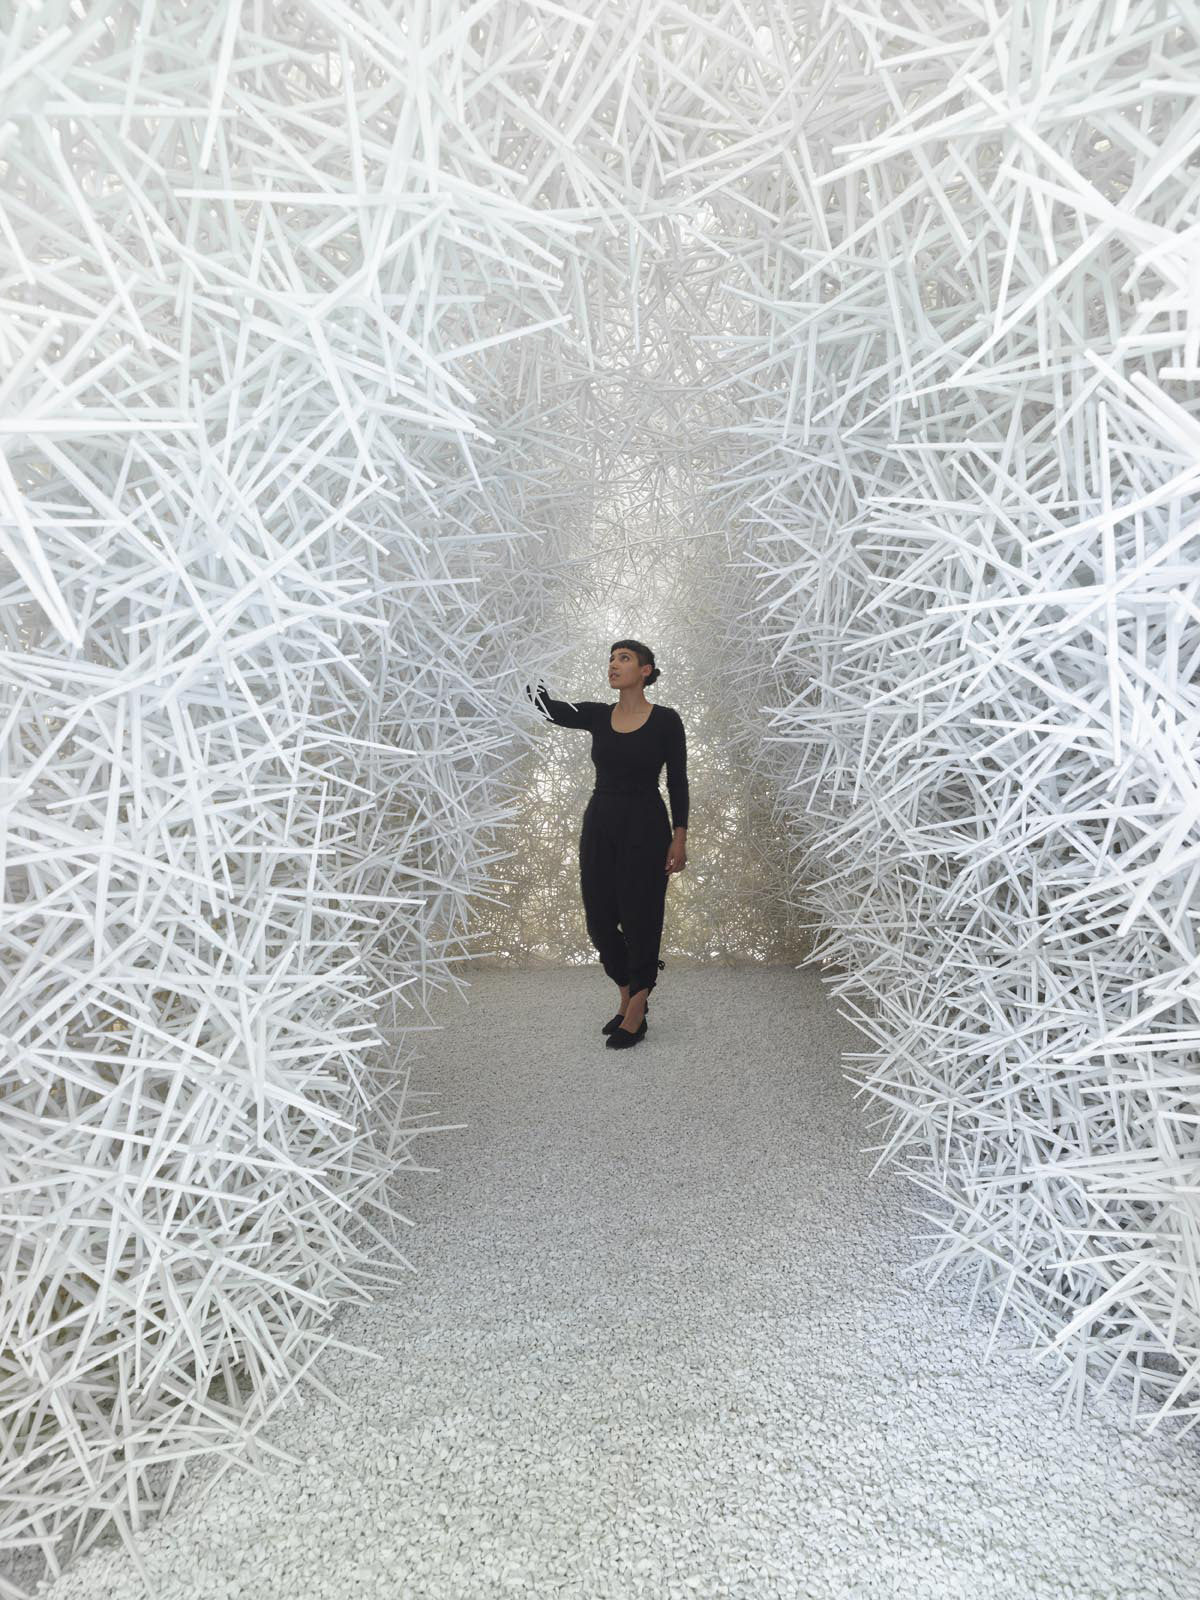 A Prickly Structure Made of 70,000 Reusable Hexapod Particles